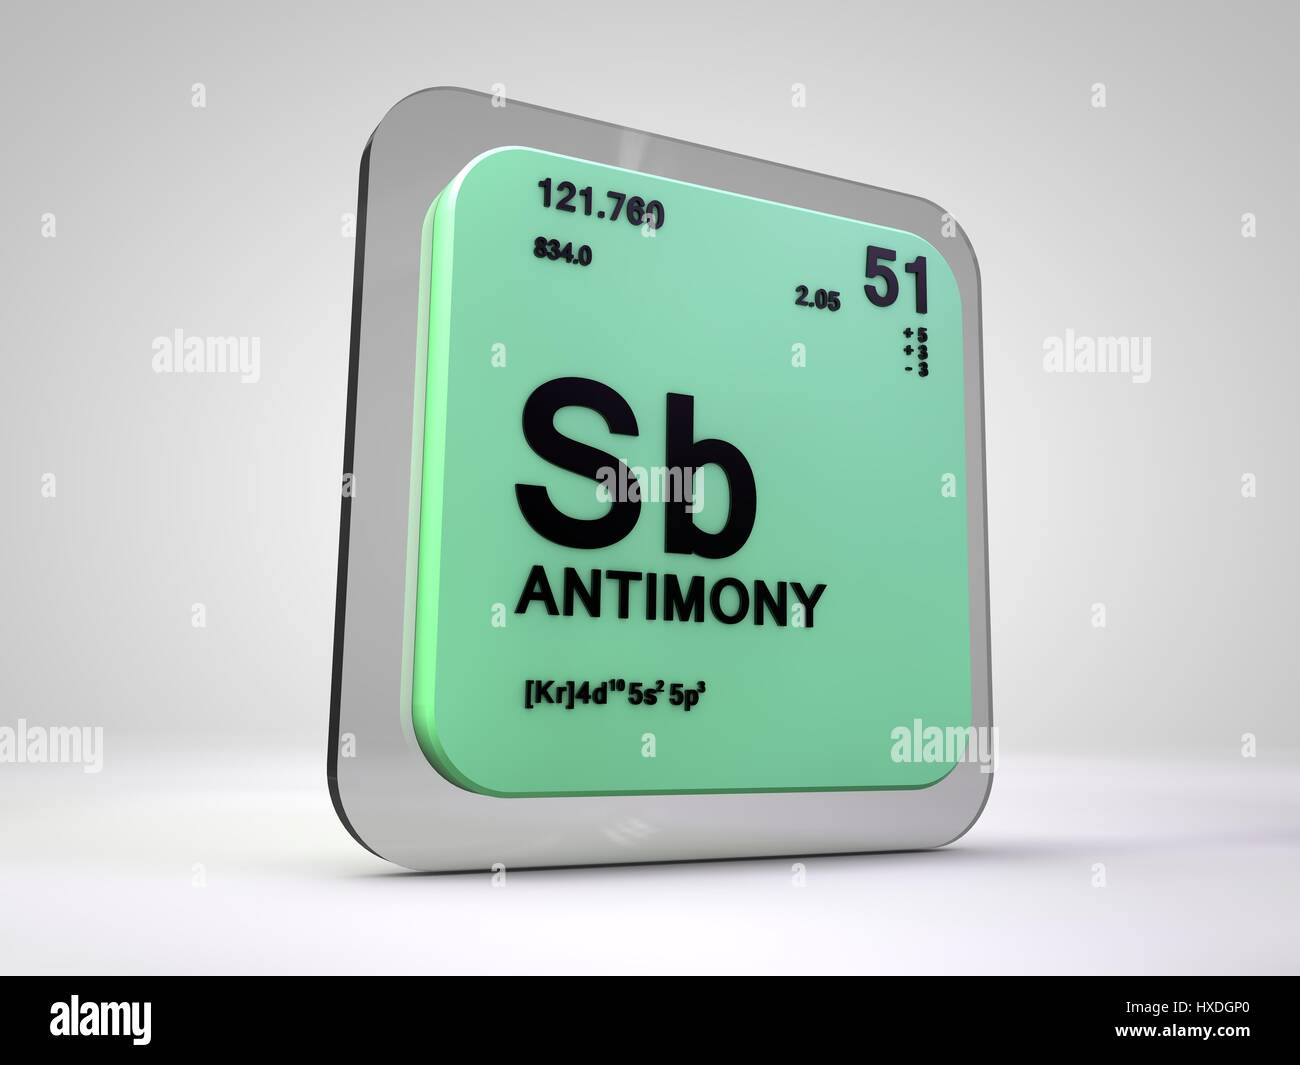 Antimony sb chemical element periodic table 3d render stock antimony sb chemical element periodic table 3d render gamestrikefo Images